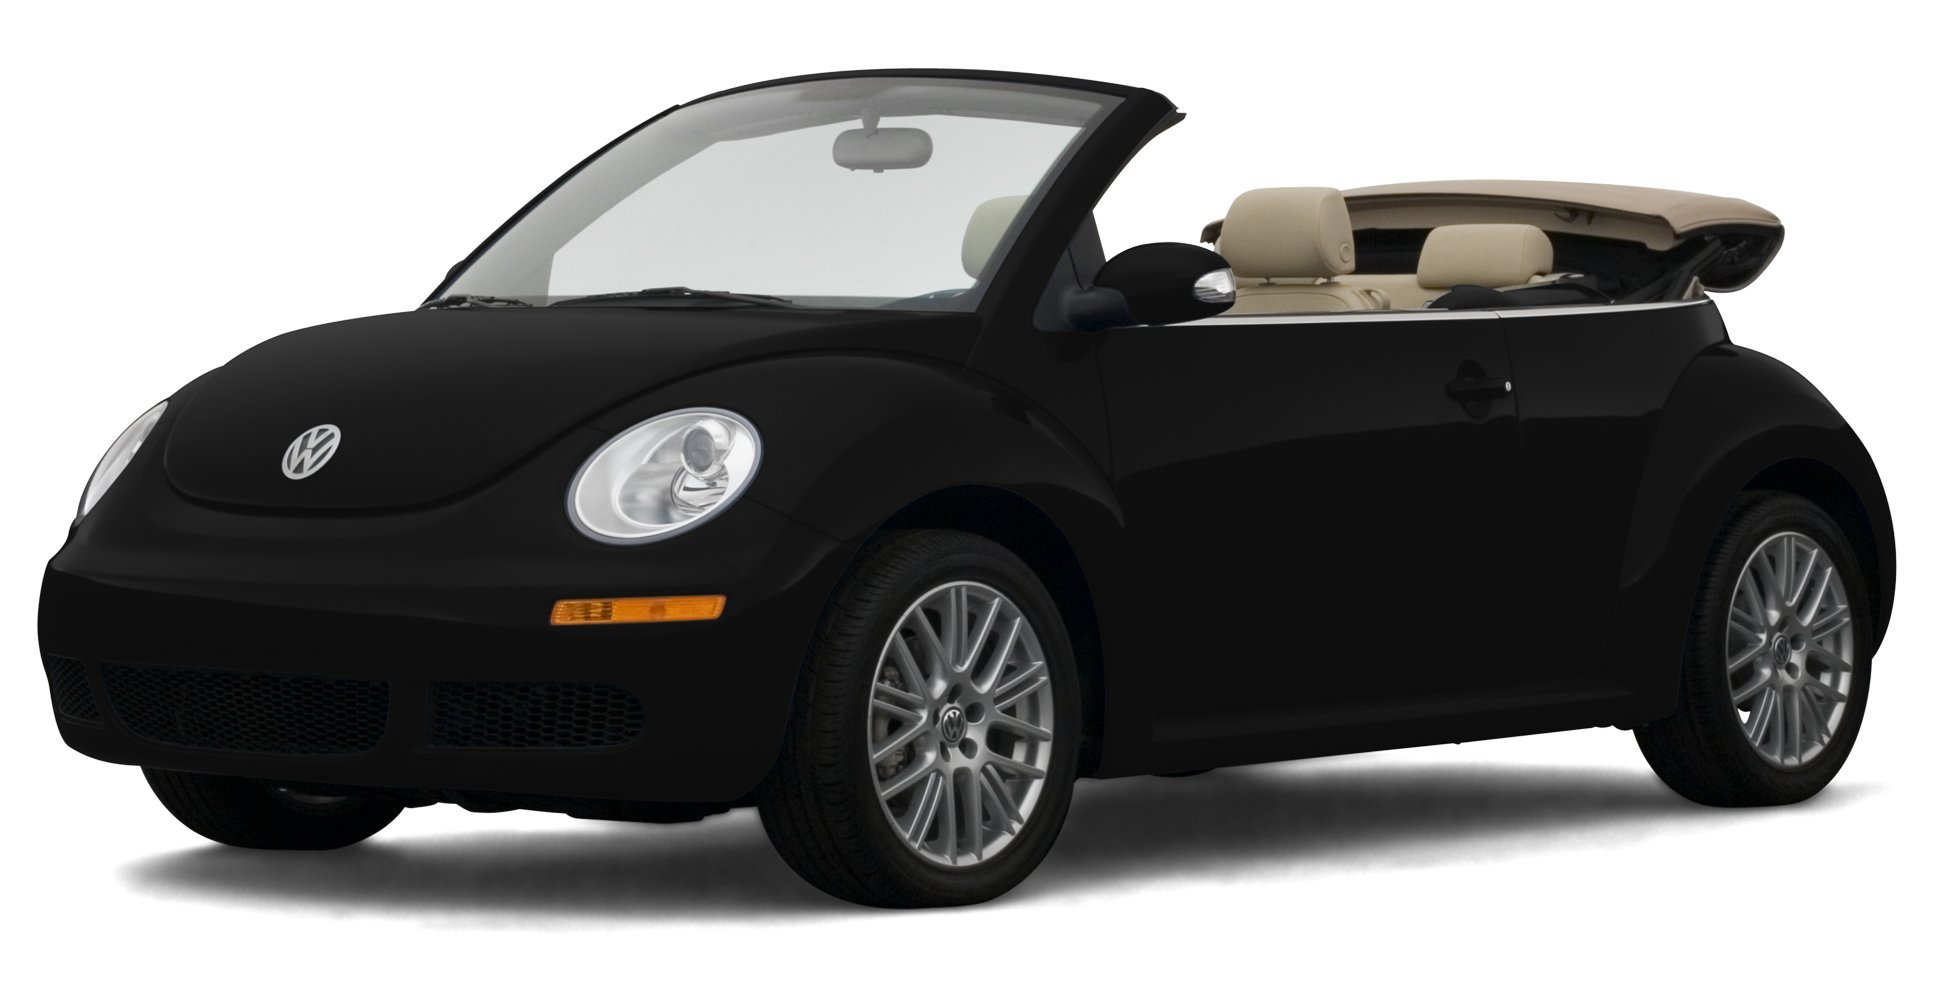 2007 Volkswagen Beetle, 2-Door Automatic Transmission ...